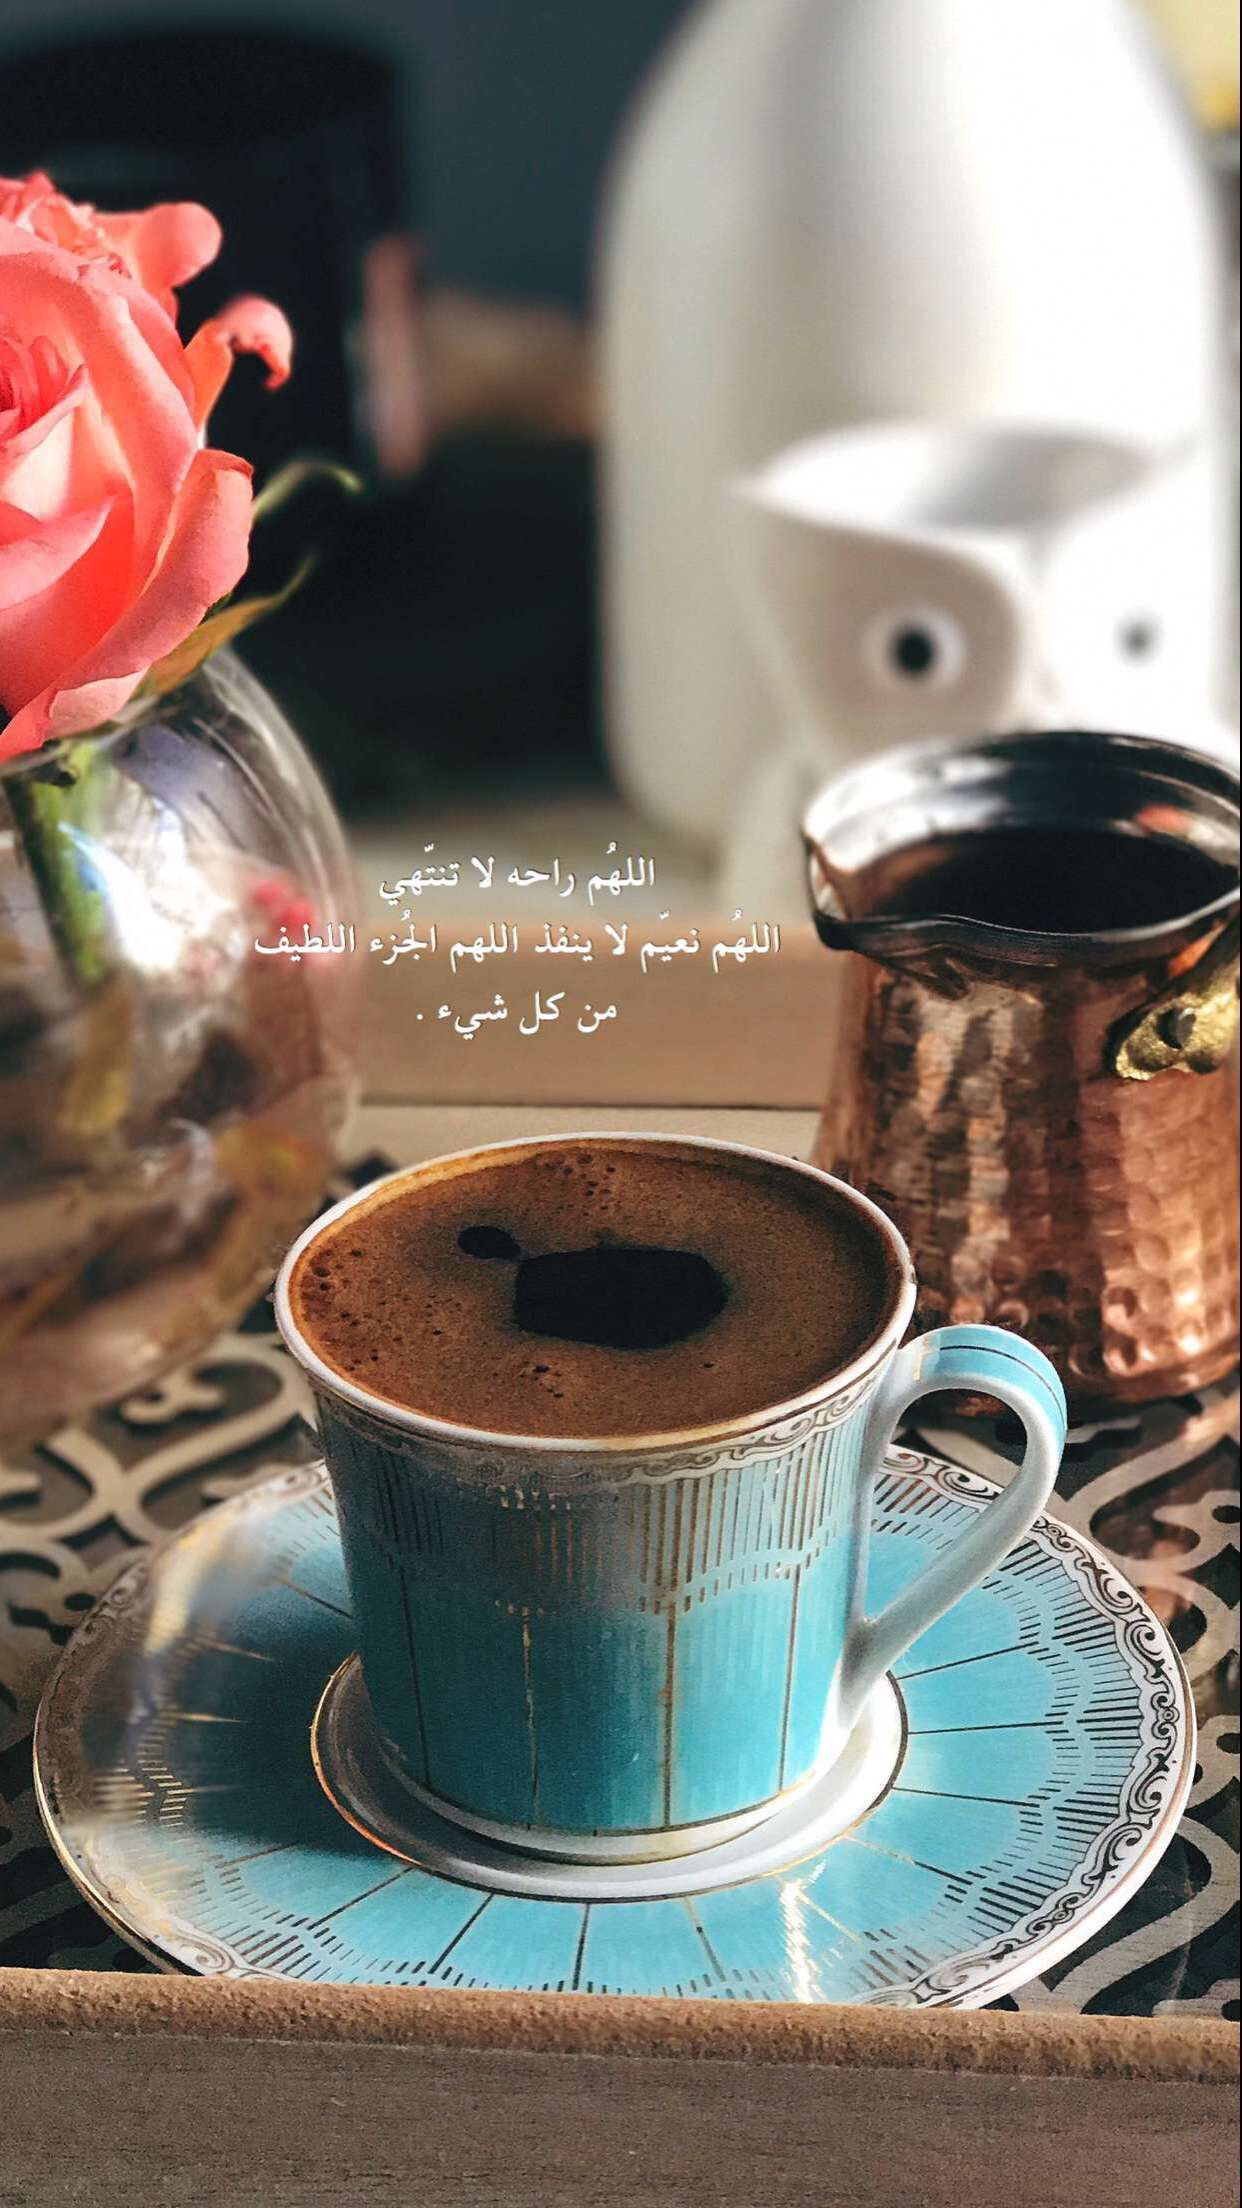 Pin By Almoon On تحايا I Love Coffee Coffee Addict Coffee Cups